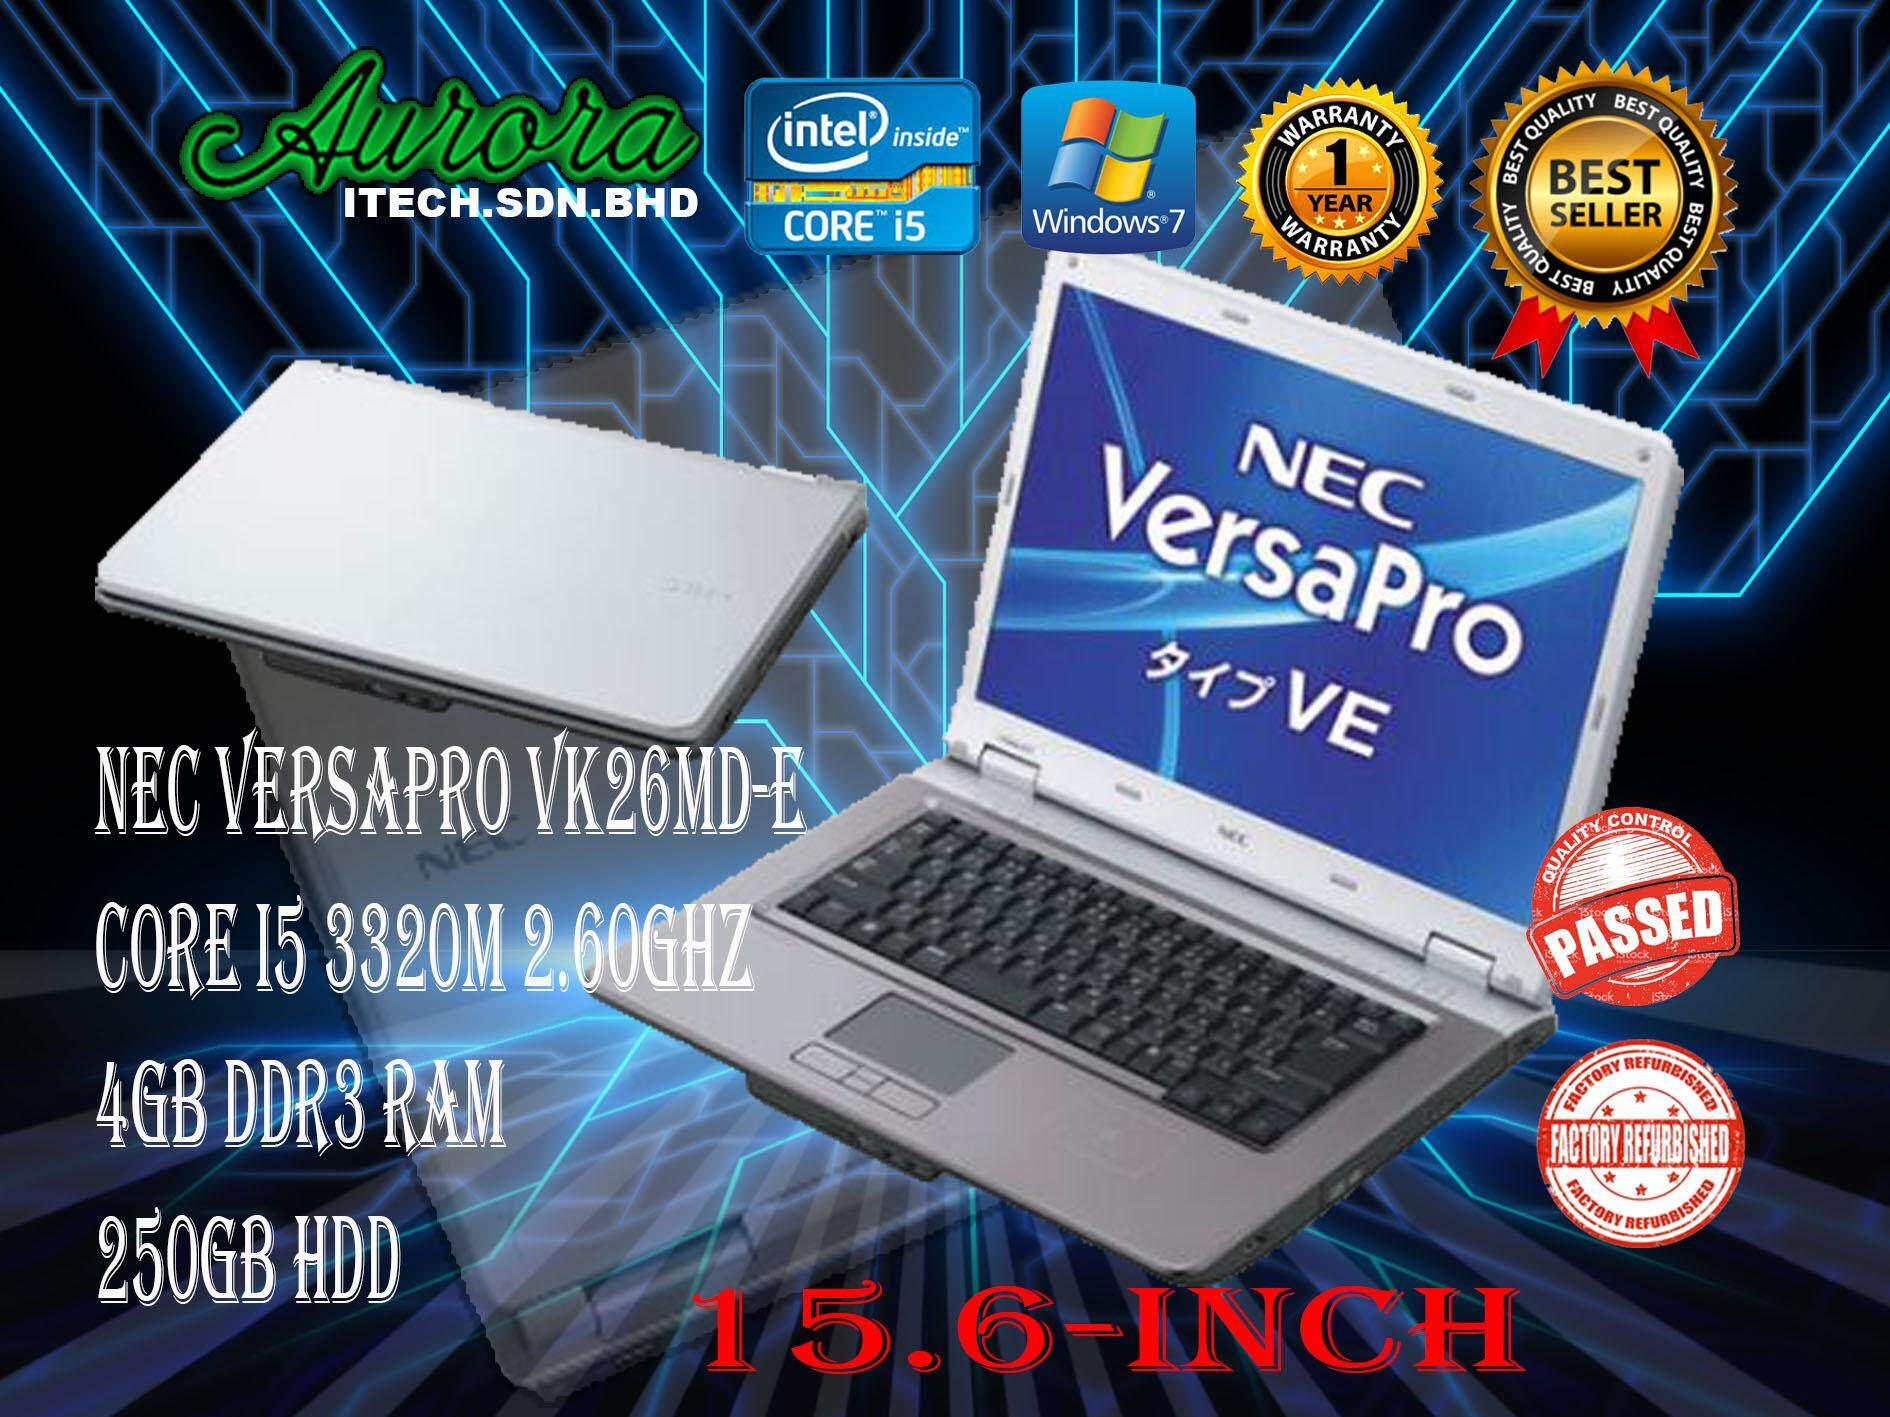 (REFURBISHED)NEC VersaPro VK26MD-E / Intel® Core™ i5-3320M 2 60GHz / 4 GB  DDR3 RAM / 250 GB SATA hdd / 15 6- INCH LCD / 1 YearWarranty,Free Mouse